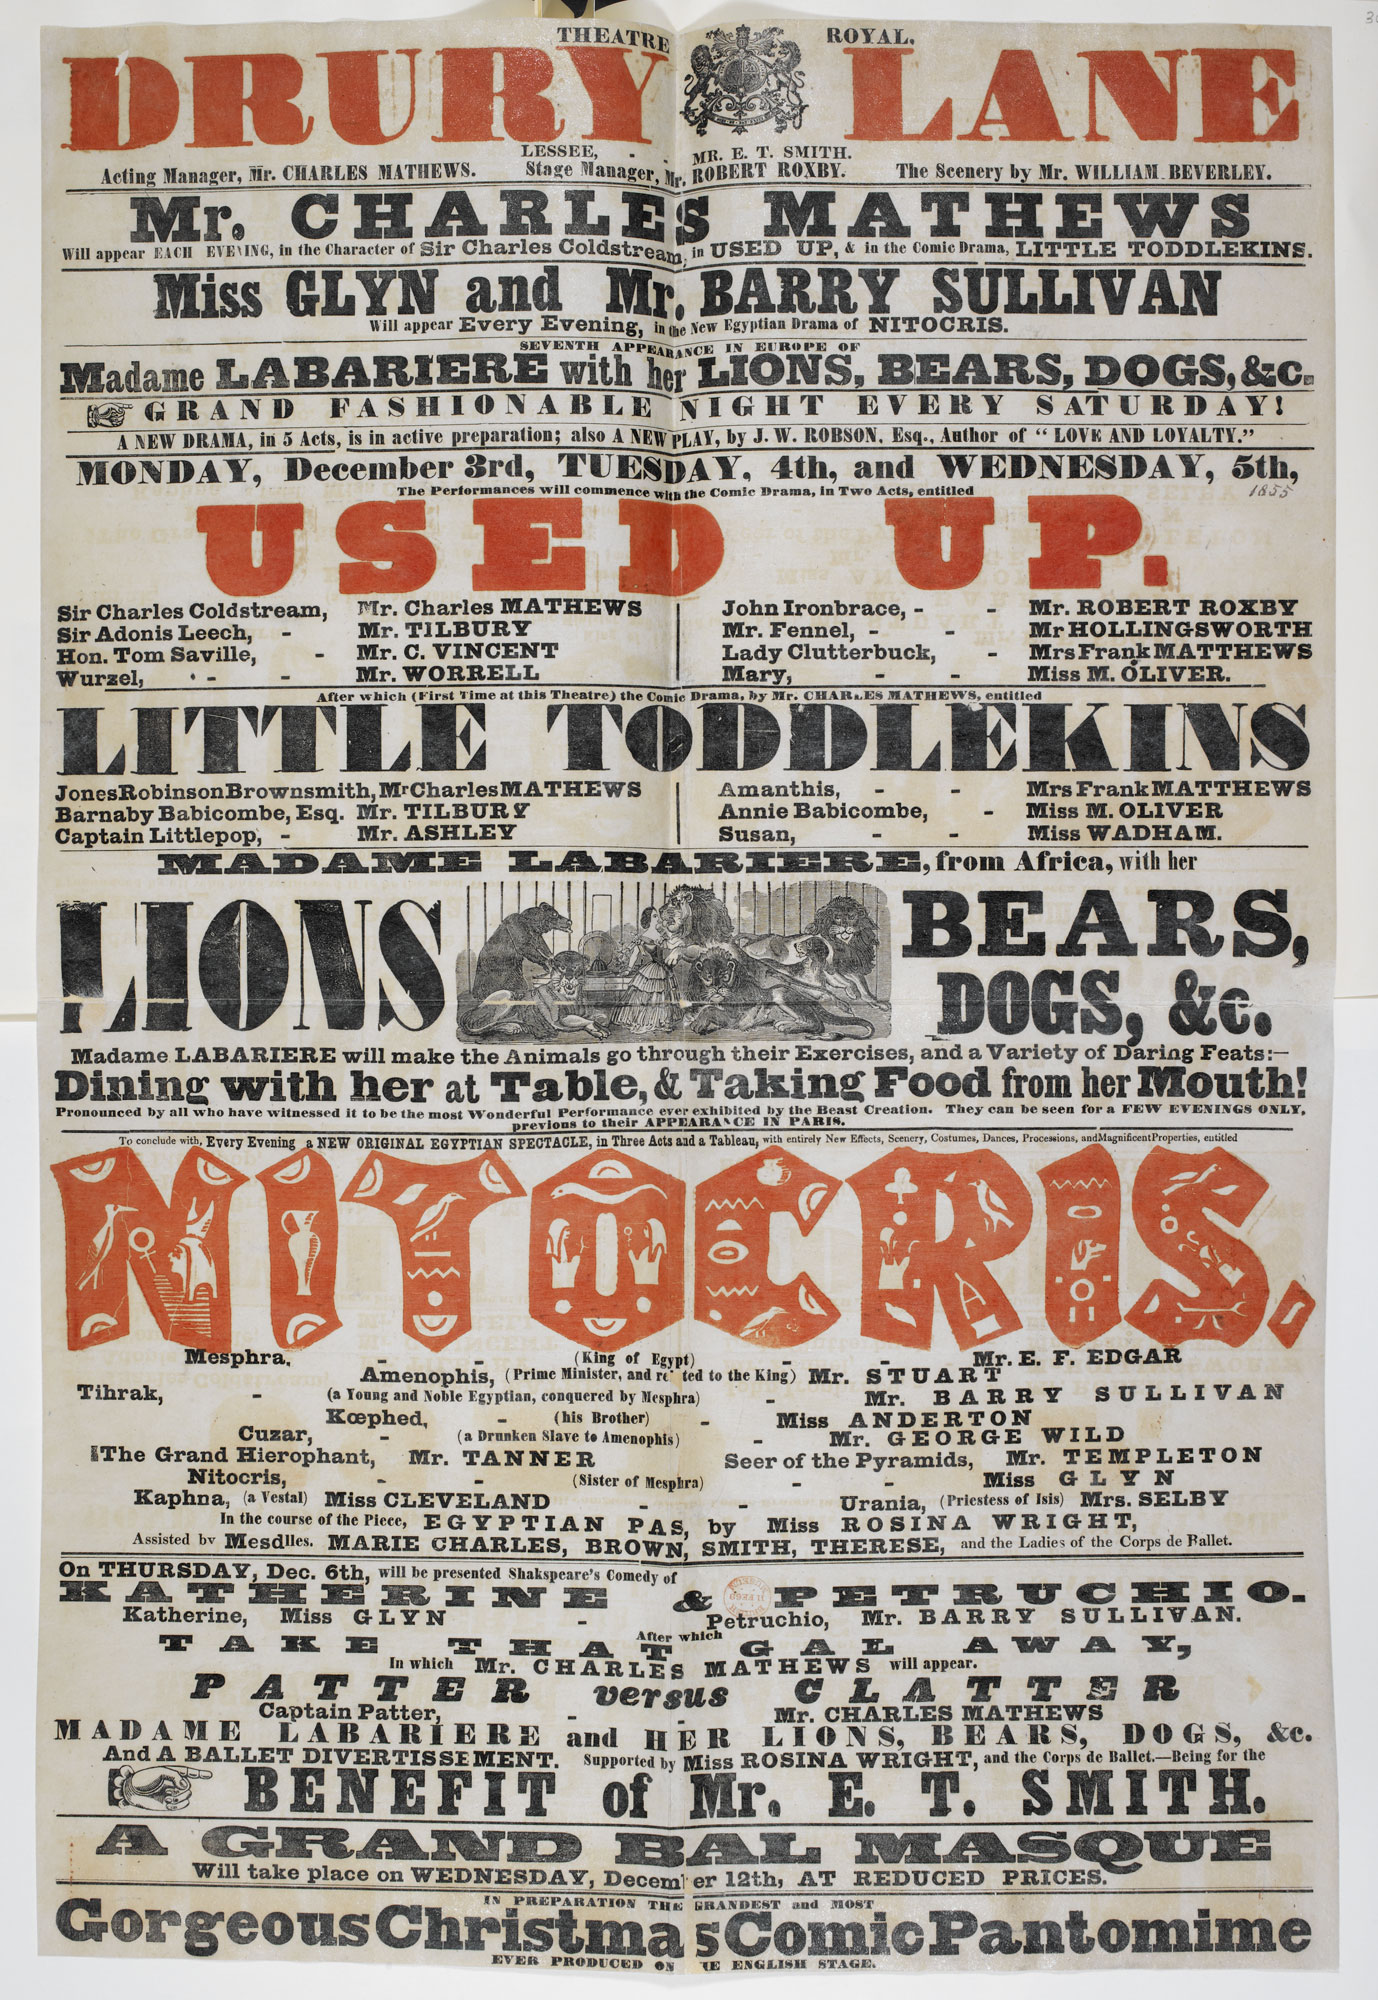 Playbill for the Theatre Royal, Drury Lane, advertising Used Up and performing animals [page: single sheet]